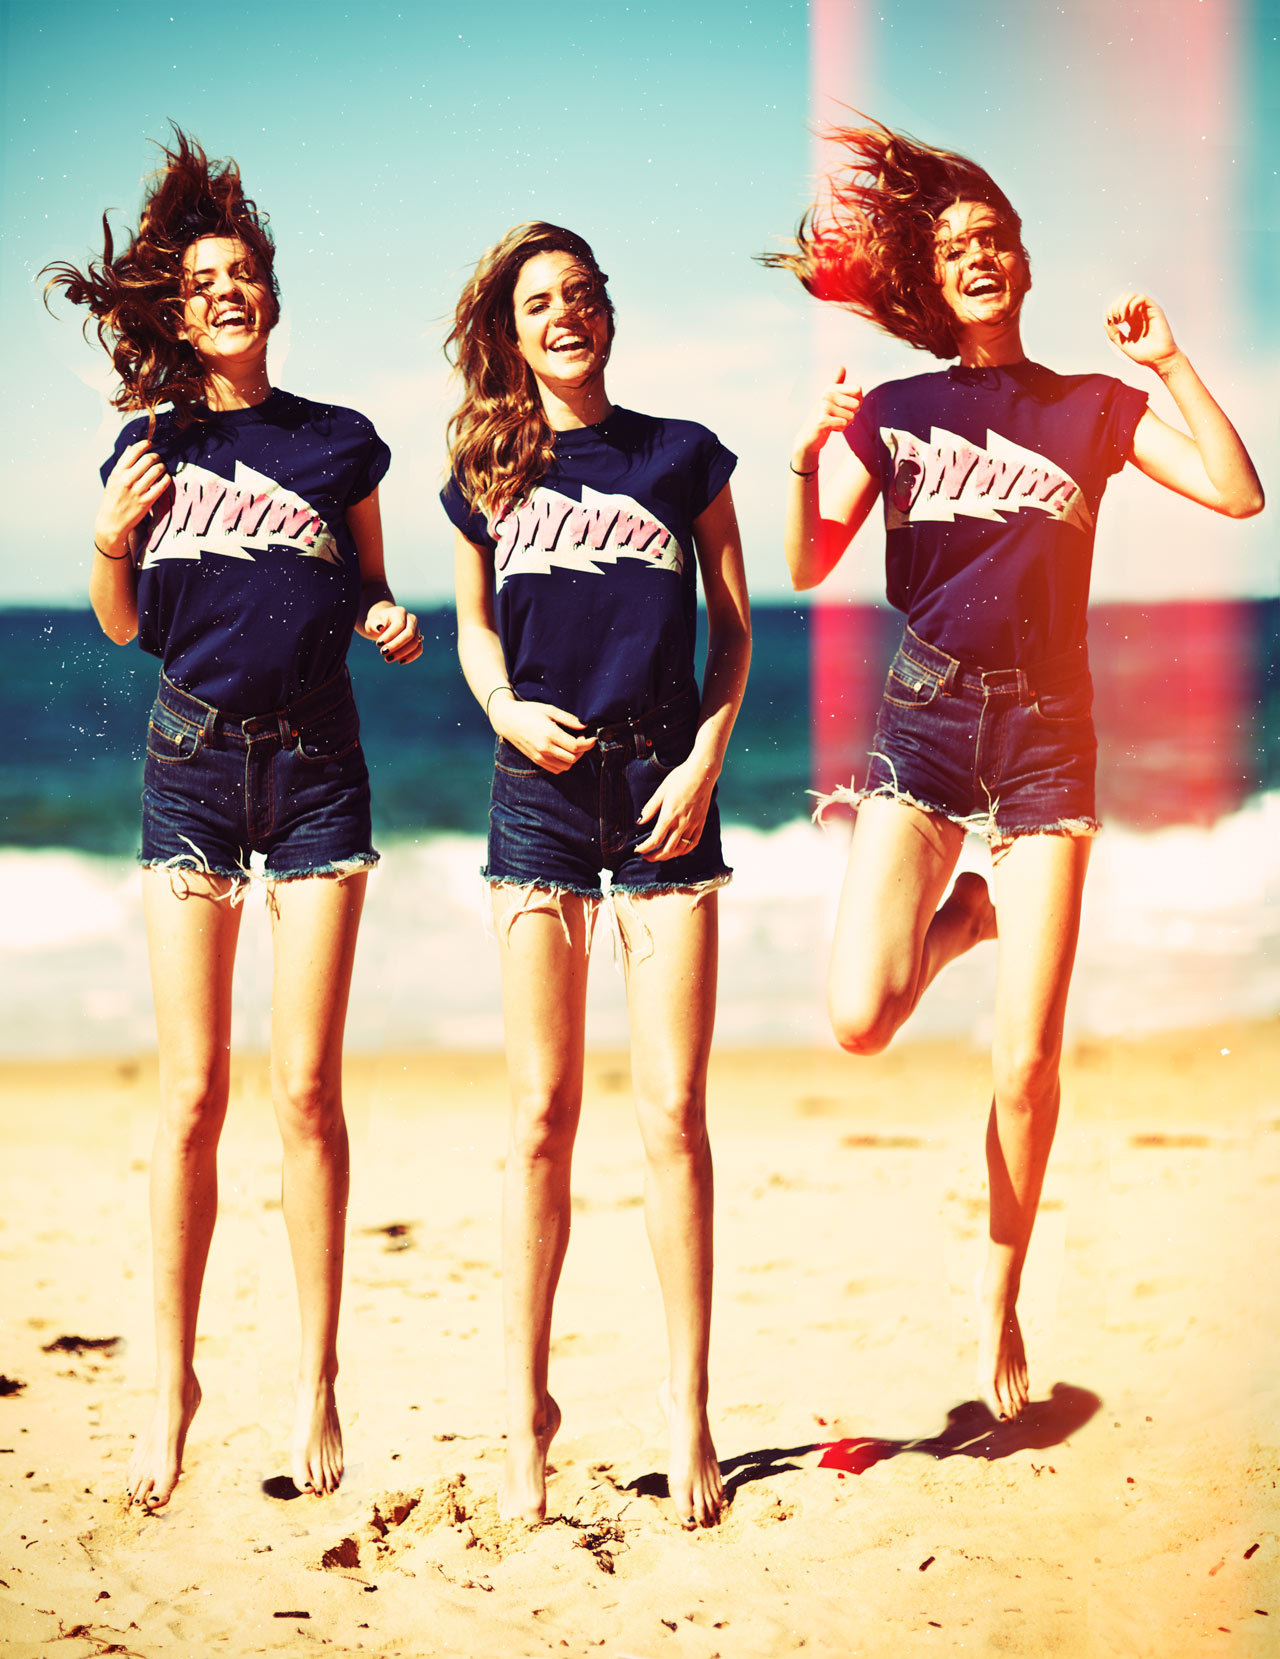 Wearing: Levis Mens Jeans turned Cutoffs, Owwww Tee But seriously you guys, how good is Pop Art inspired c